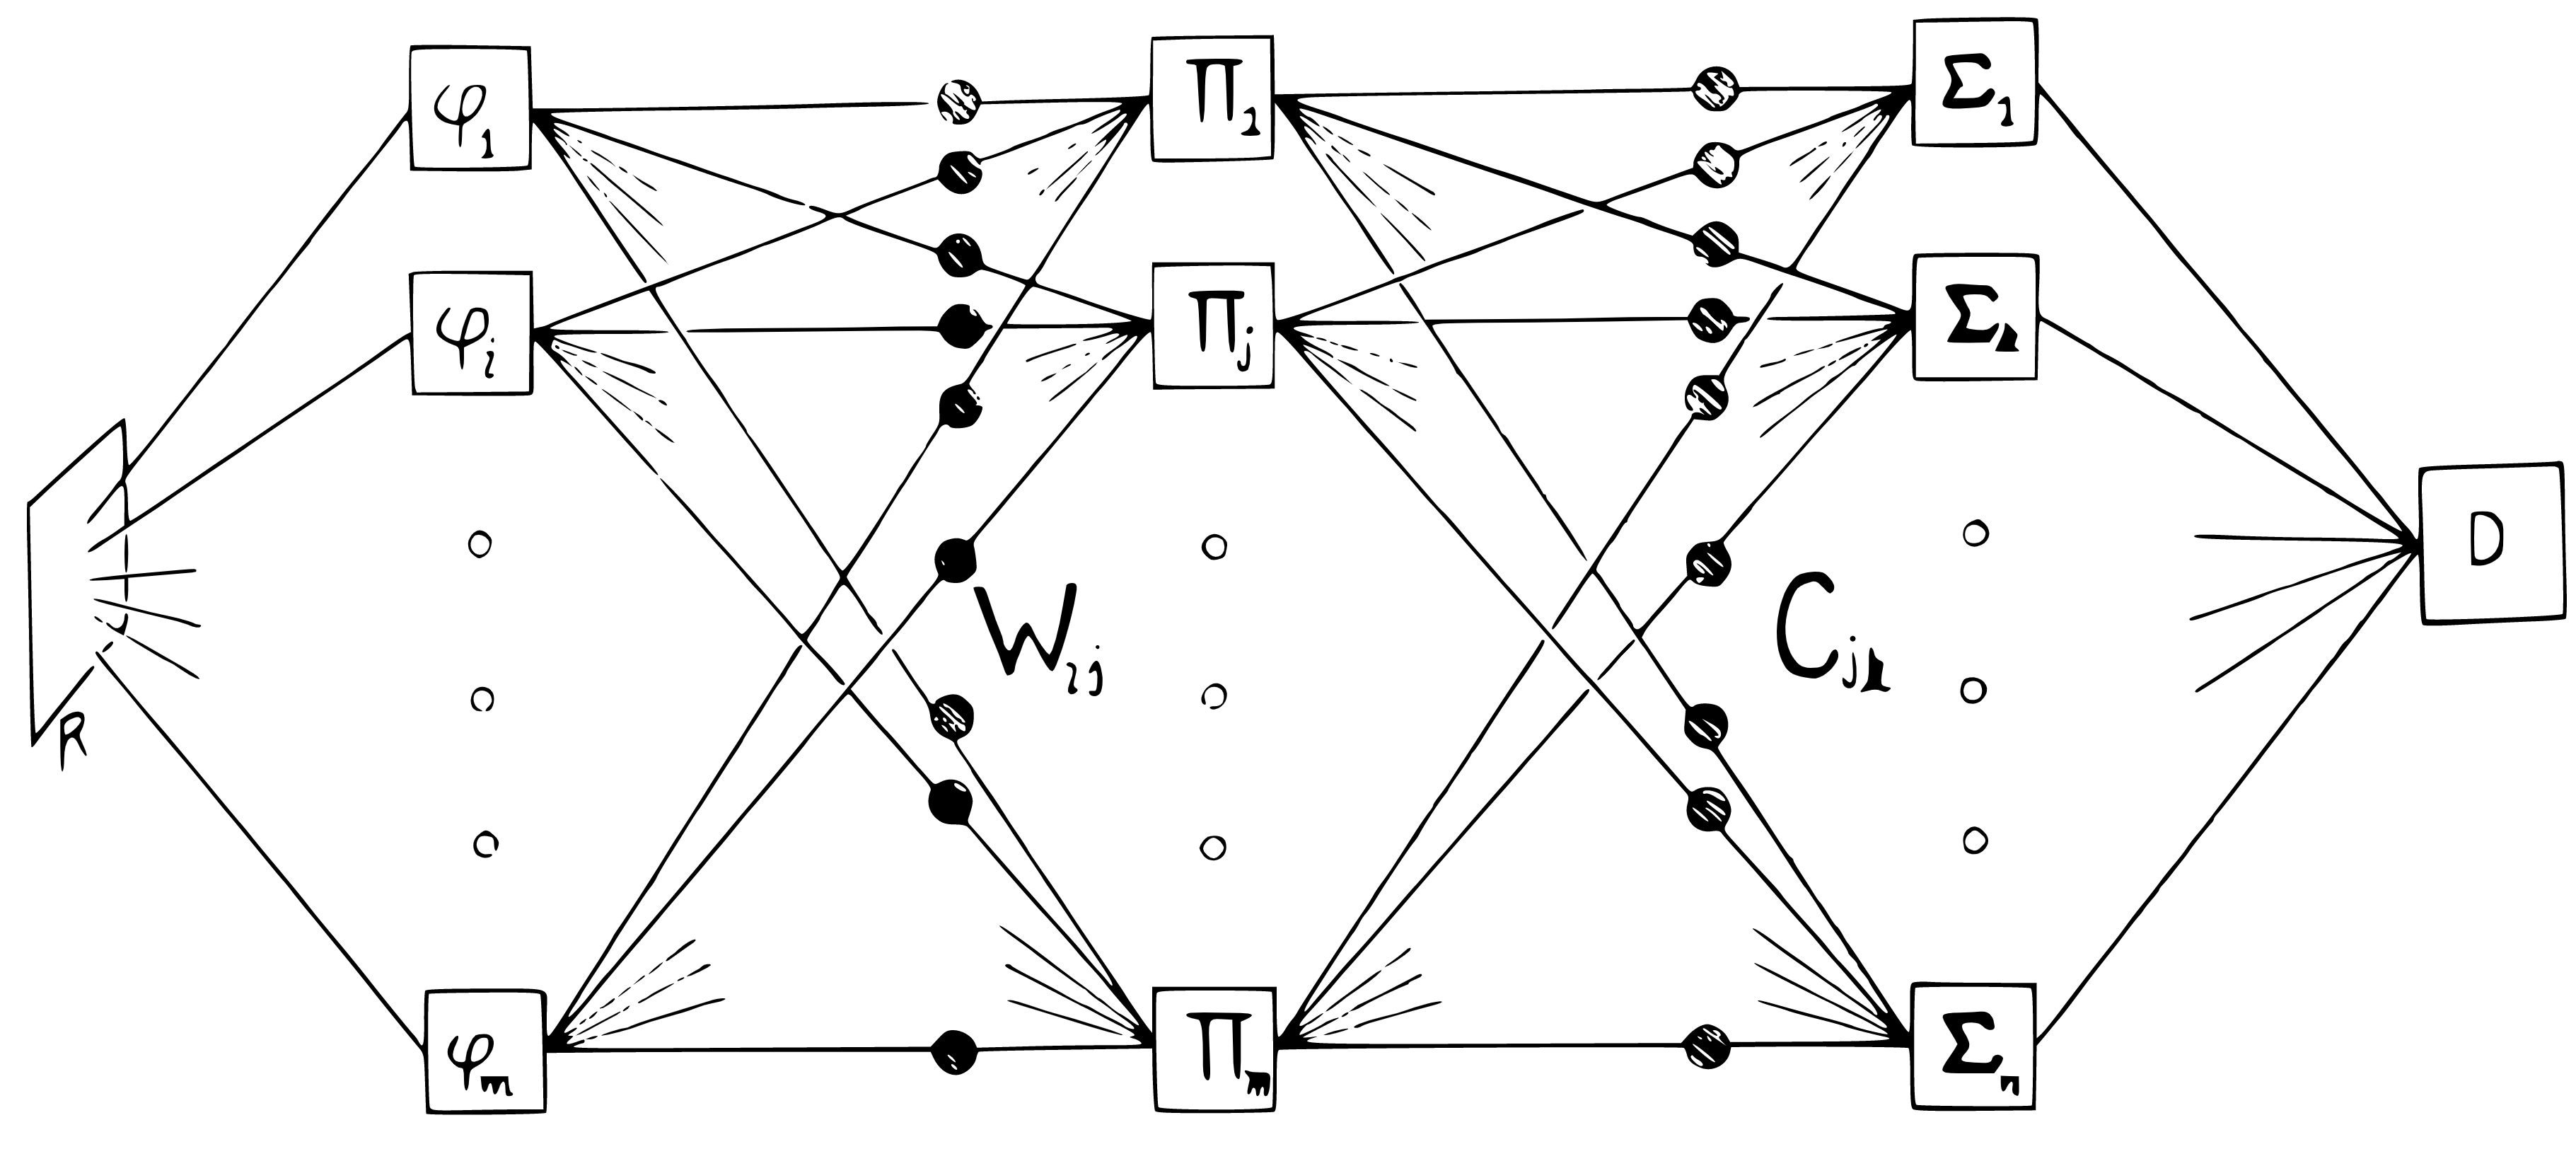 Layered perceptrons as illustrated in the perceptrons book||extensions-minsky-layered